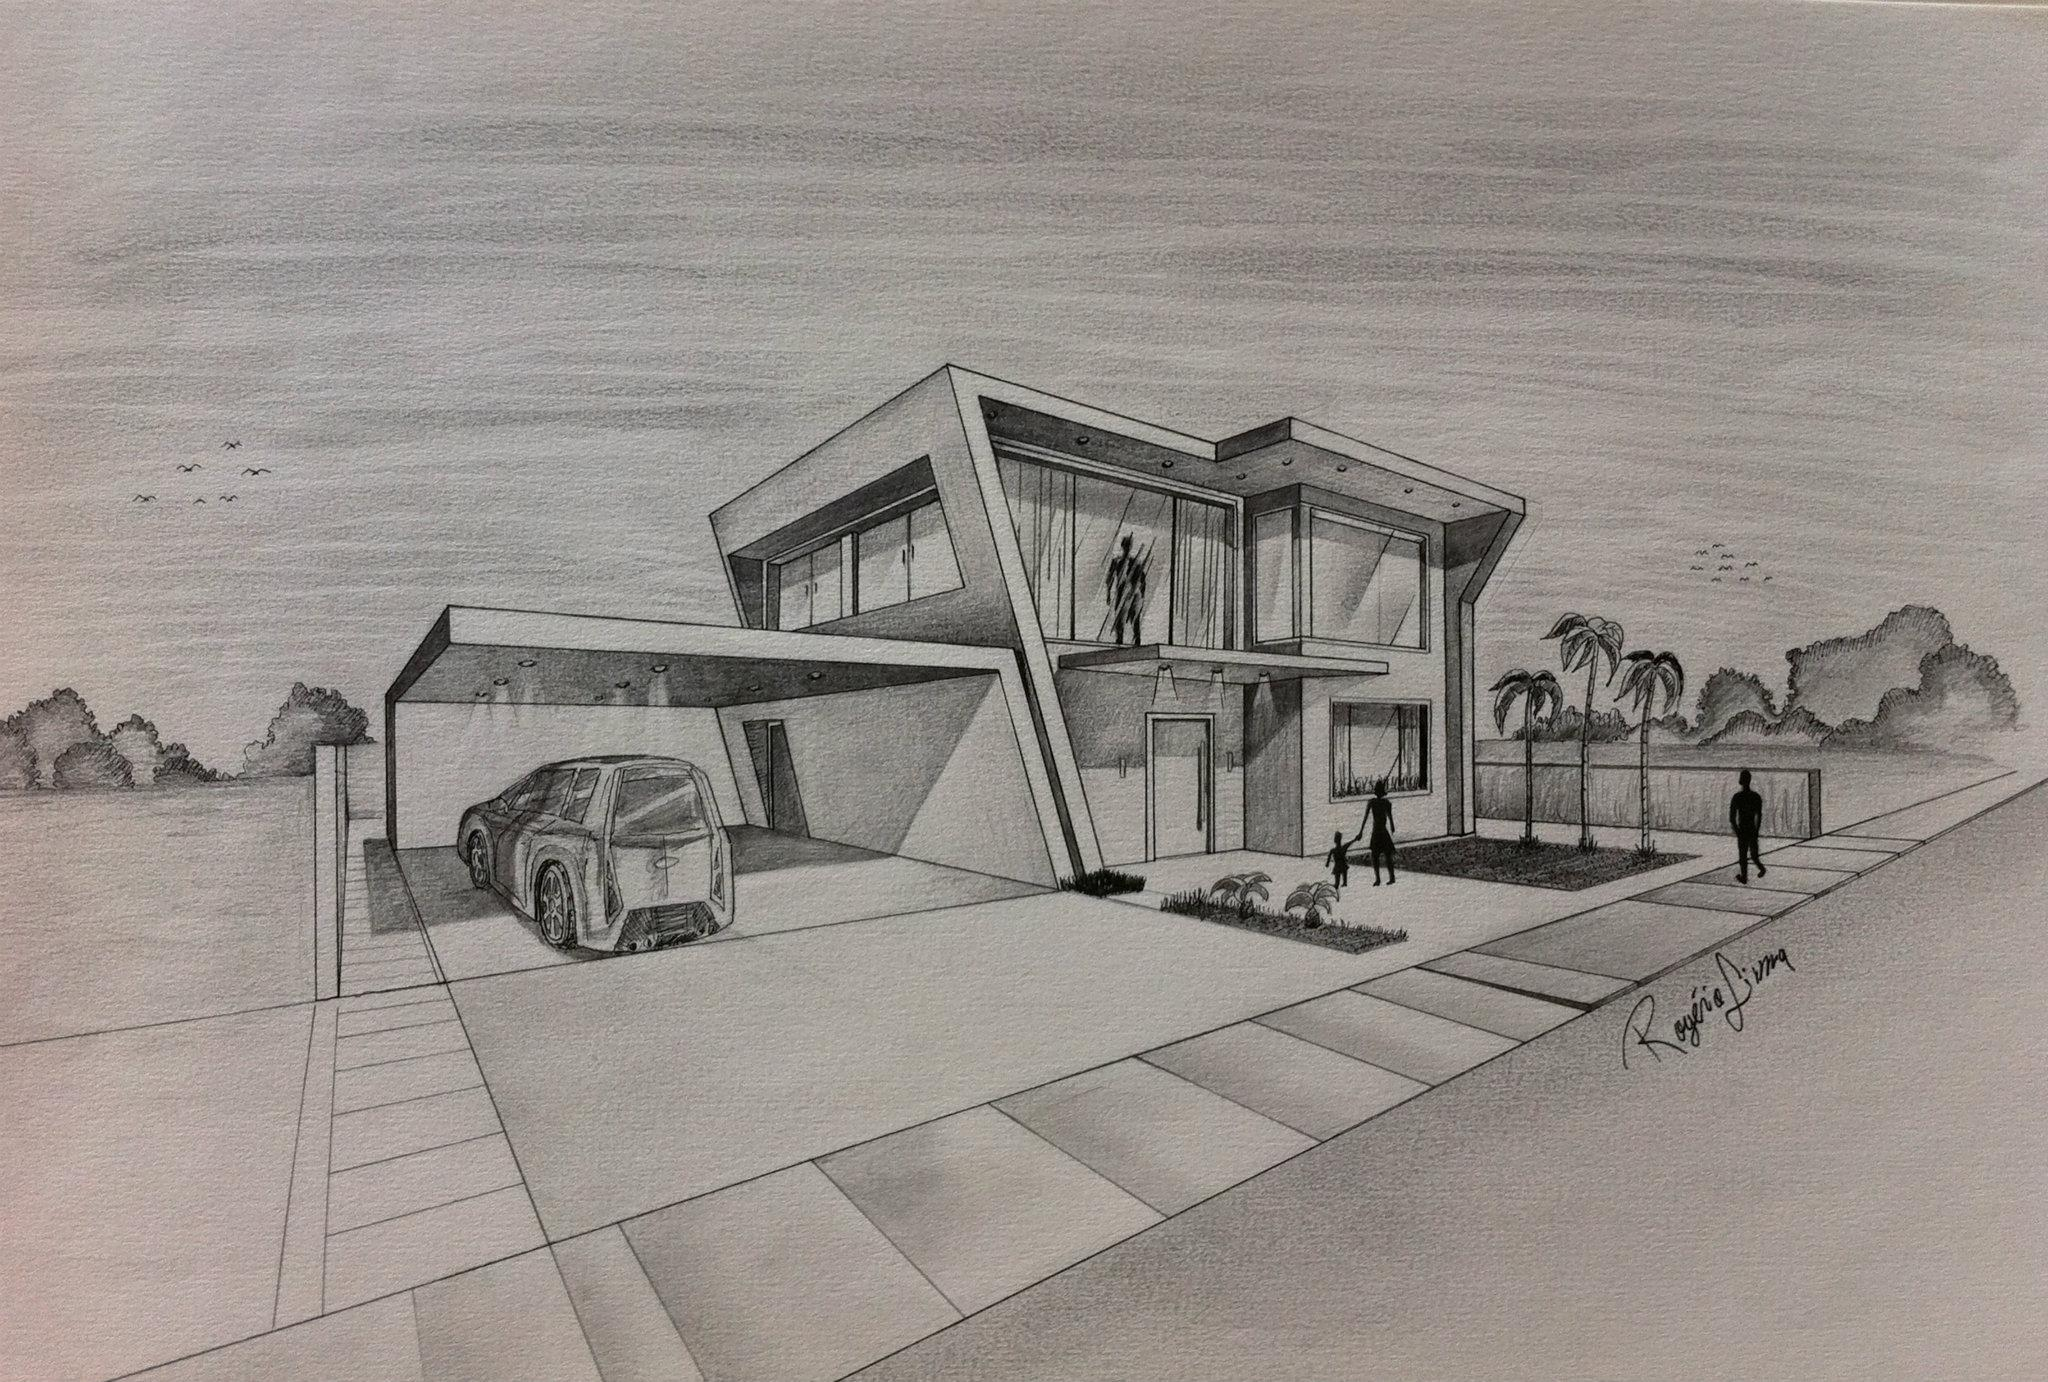 Architect hand drawing at free for for Various architectural concepts